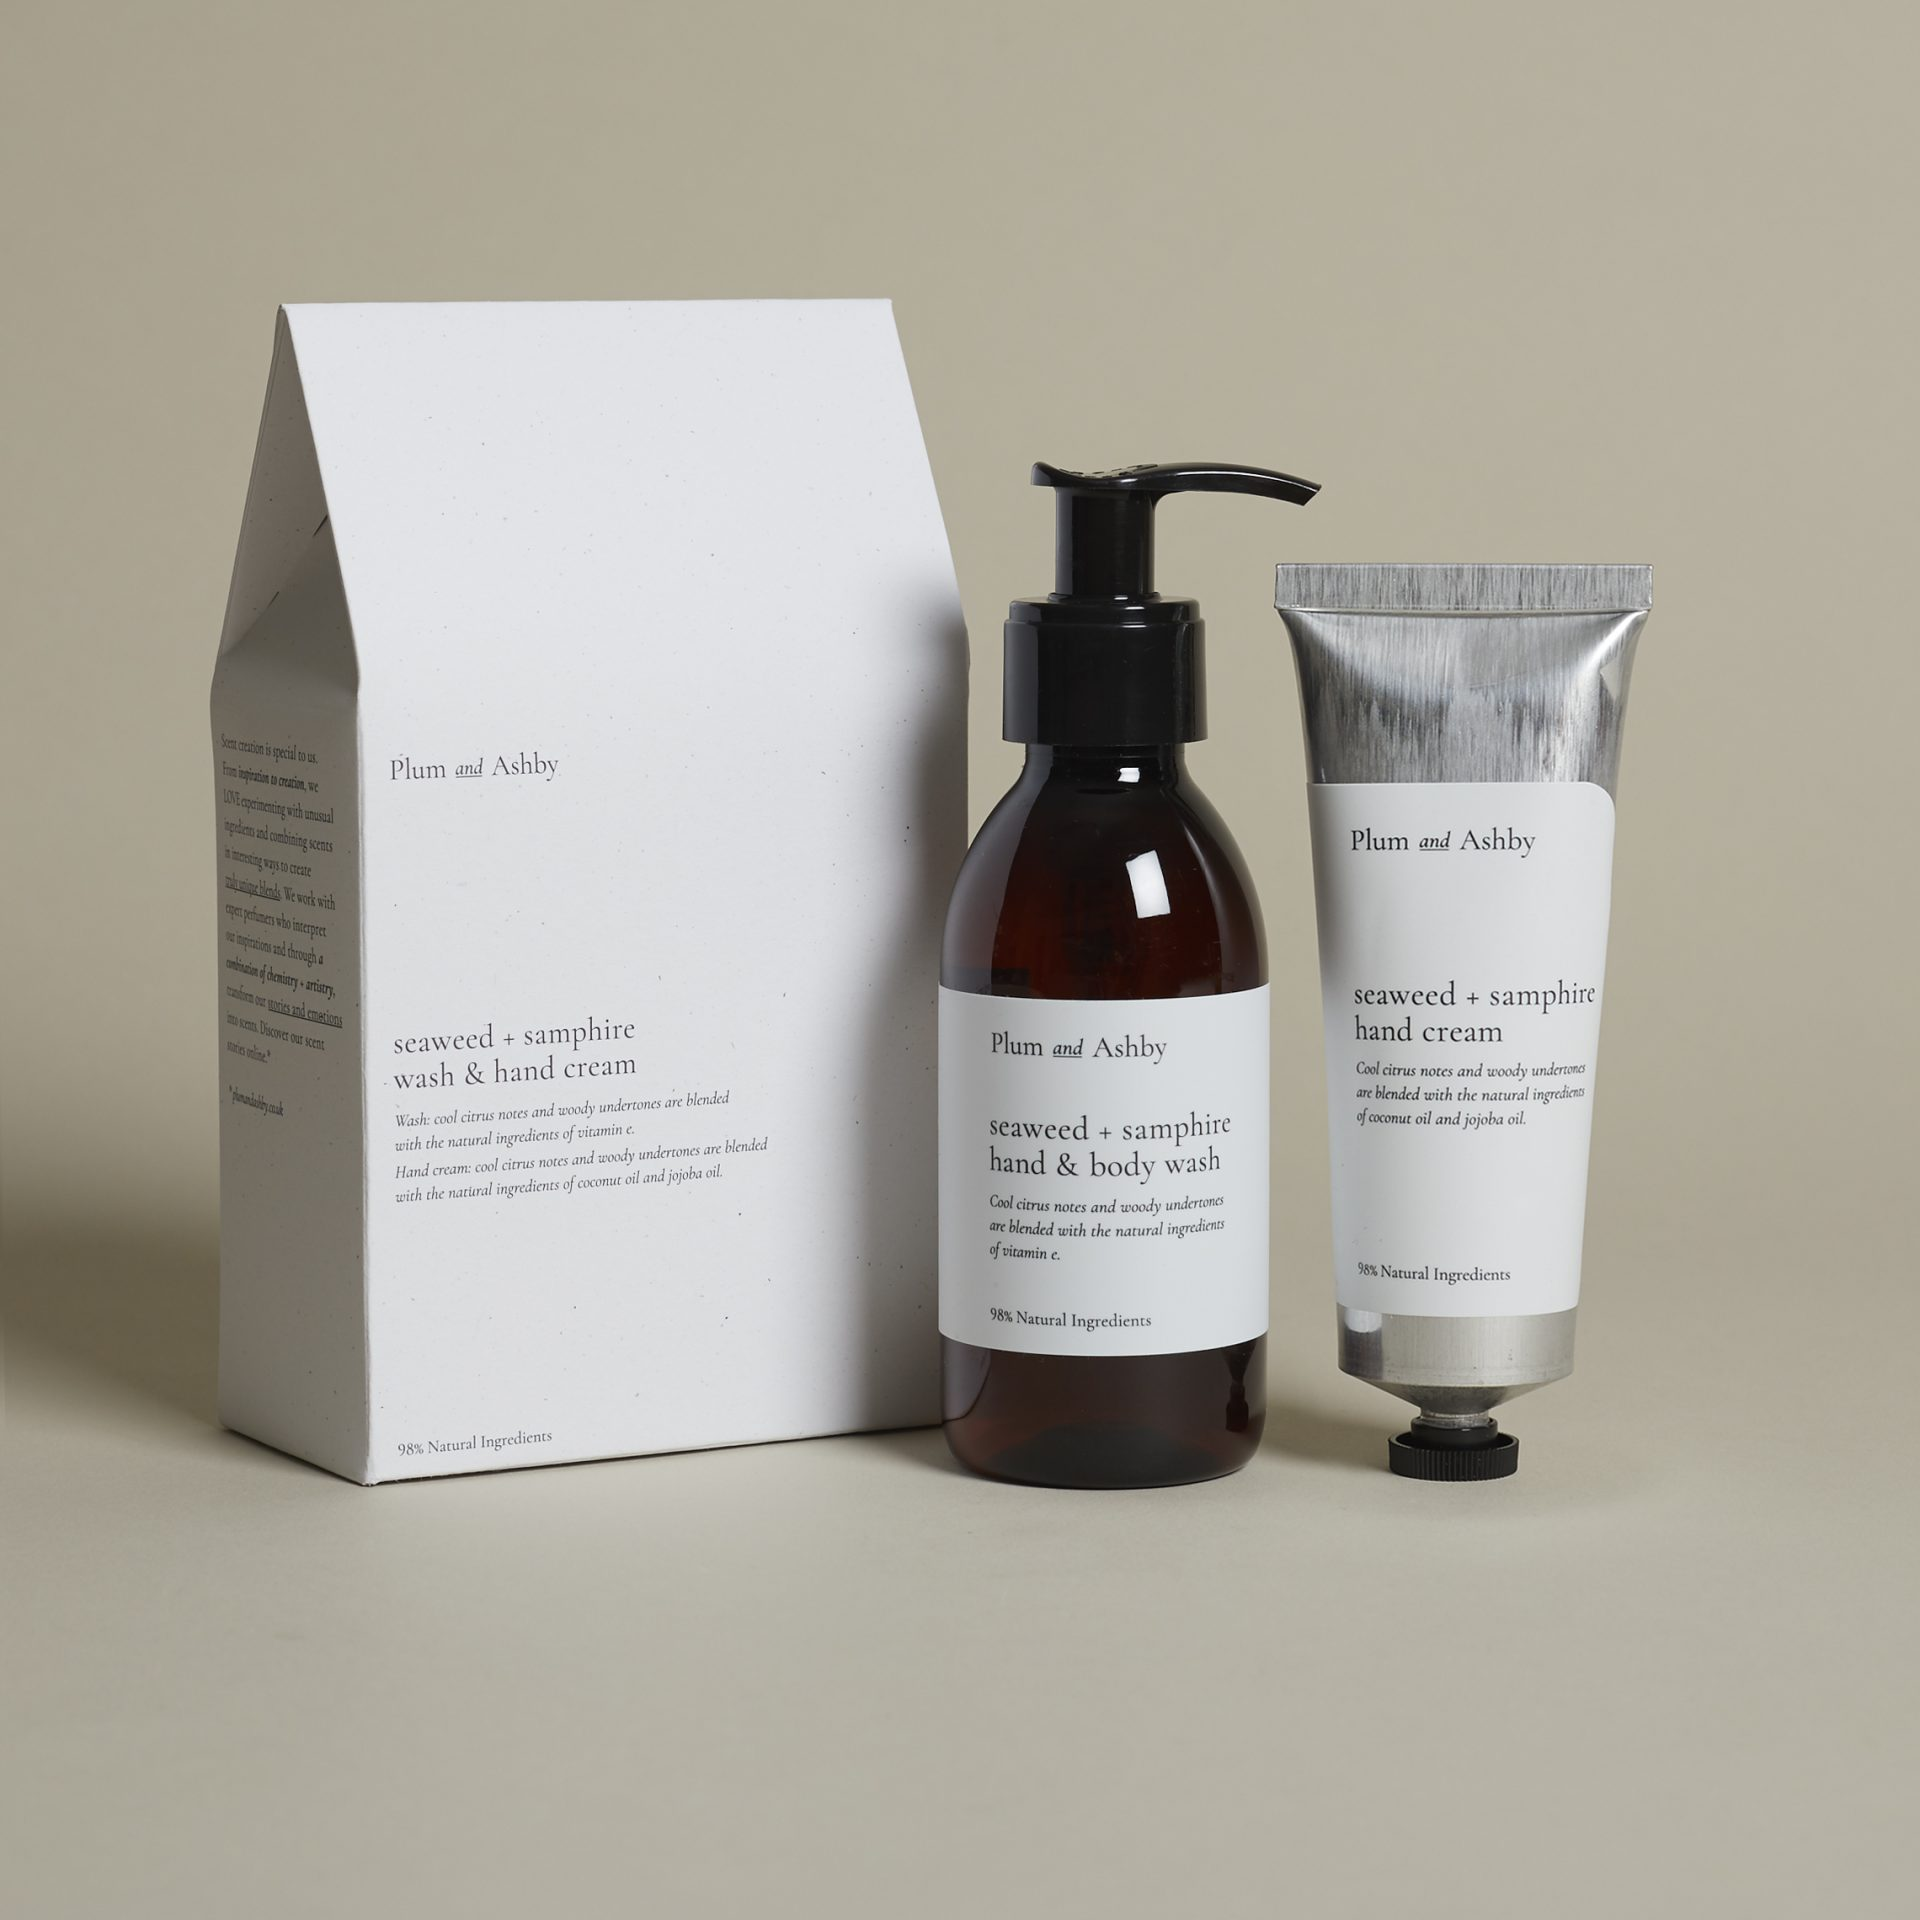 Plum and Ashby Seaweed & Samphire Duo Gift Set